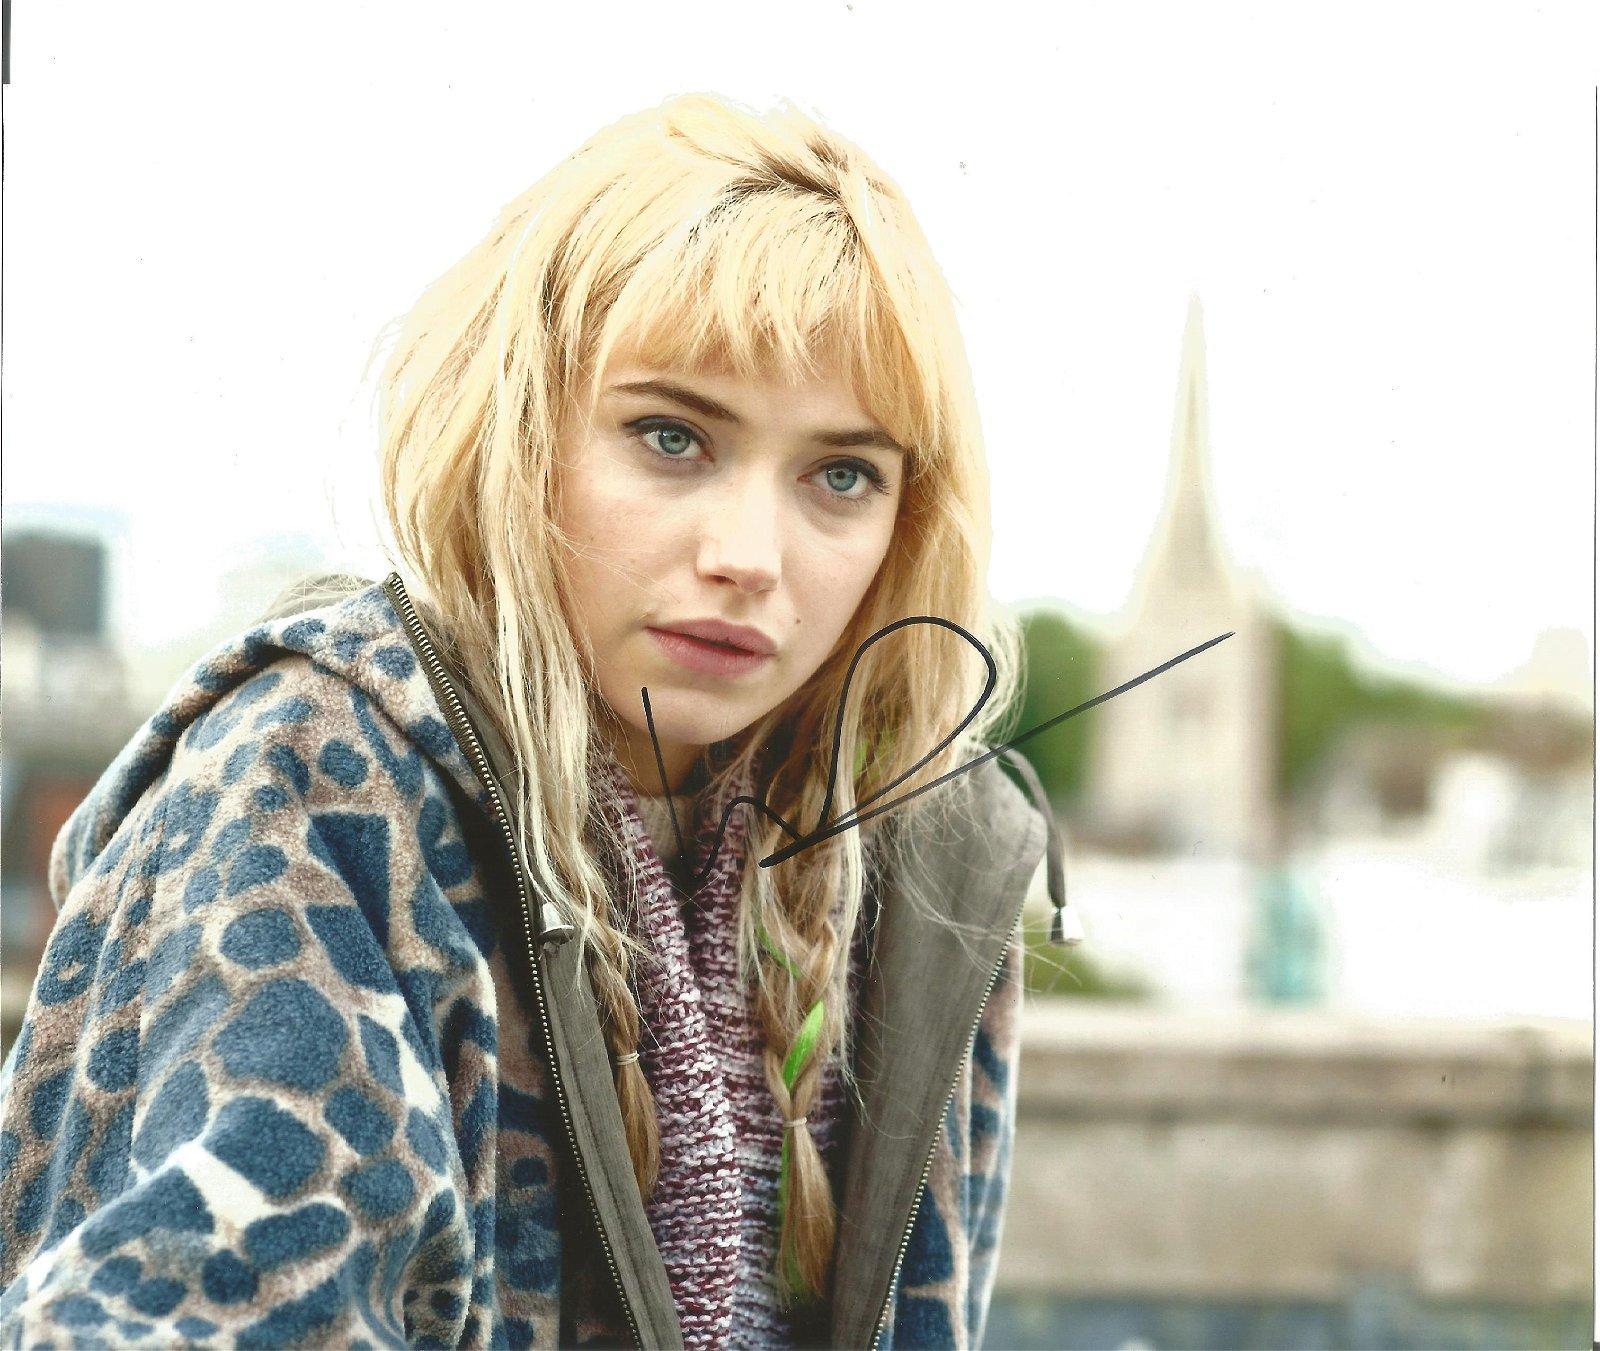 Imogen Poots Actress Signed 8x10 Photo . Good